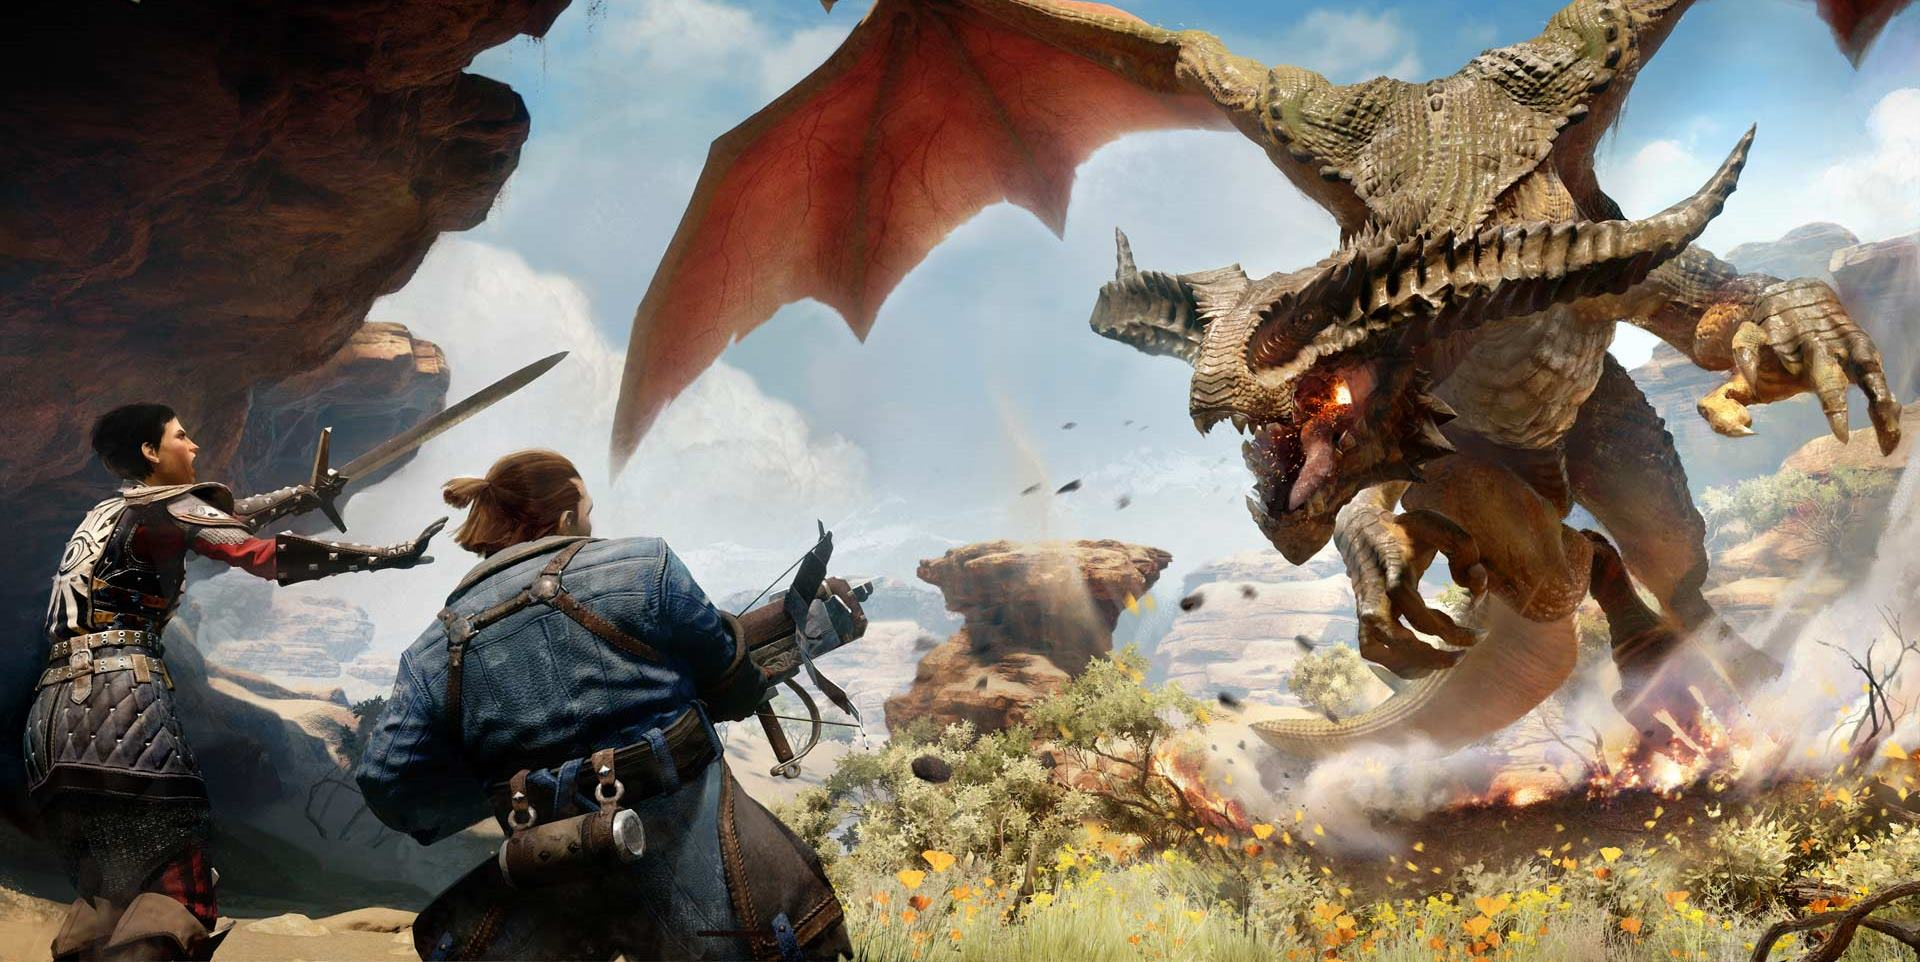 Dragon Age: Inquisition dev shares hilarious facts about the game's sex scenes